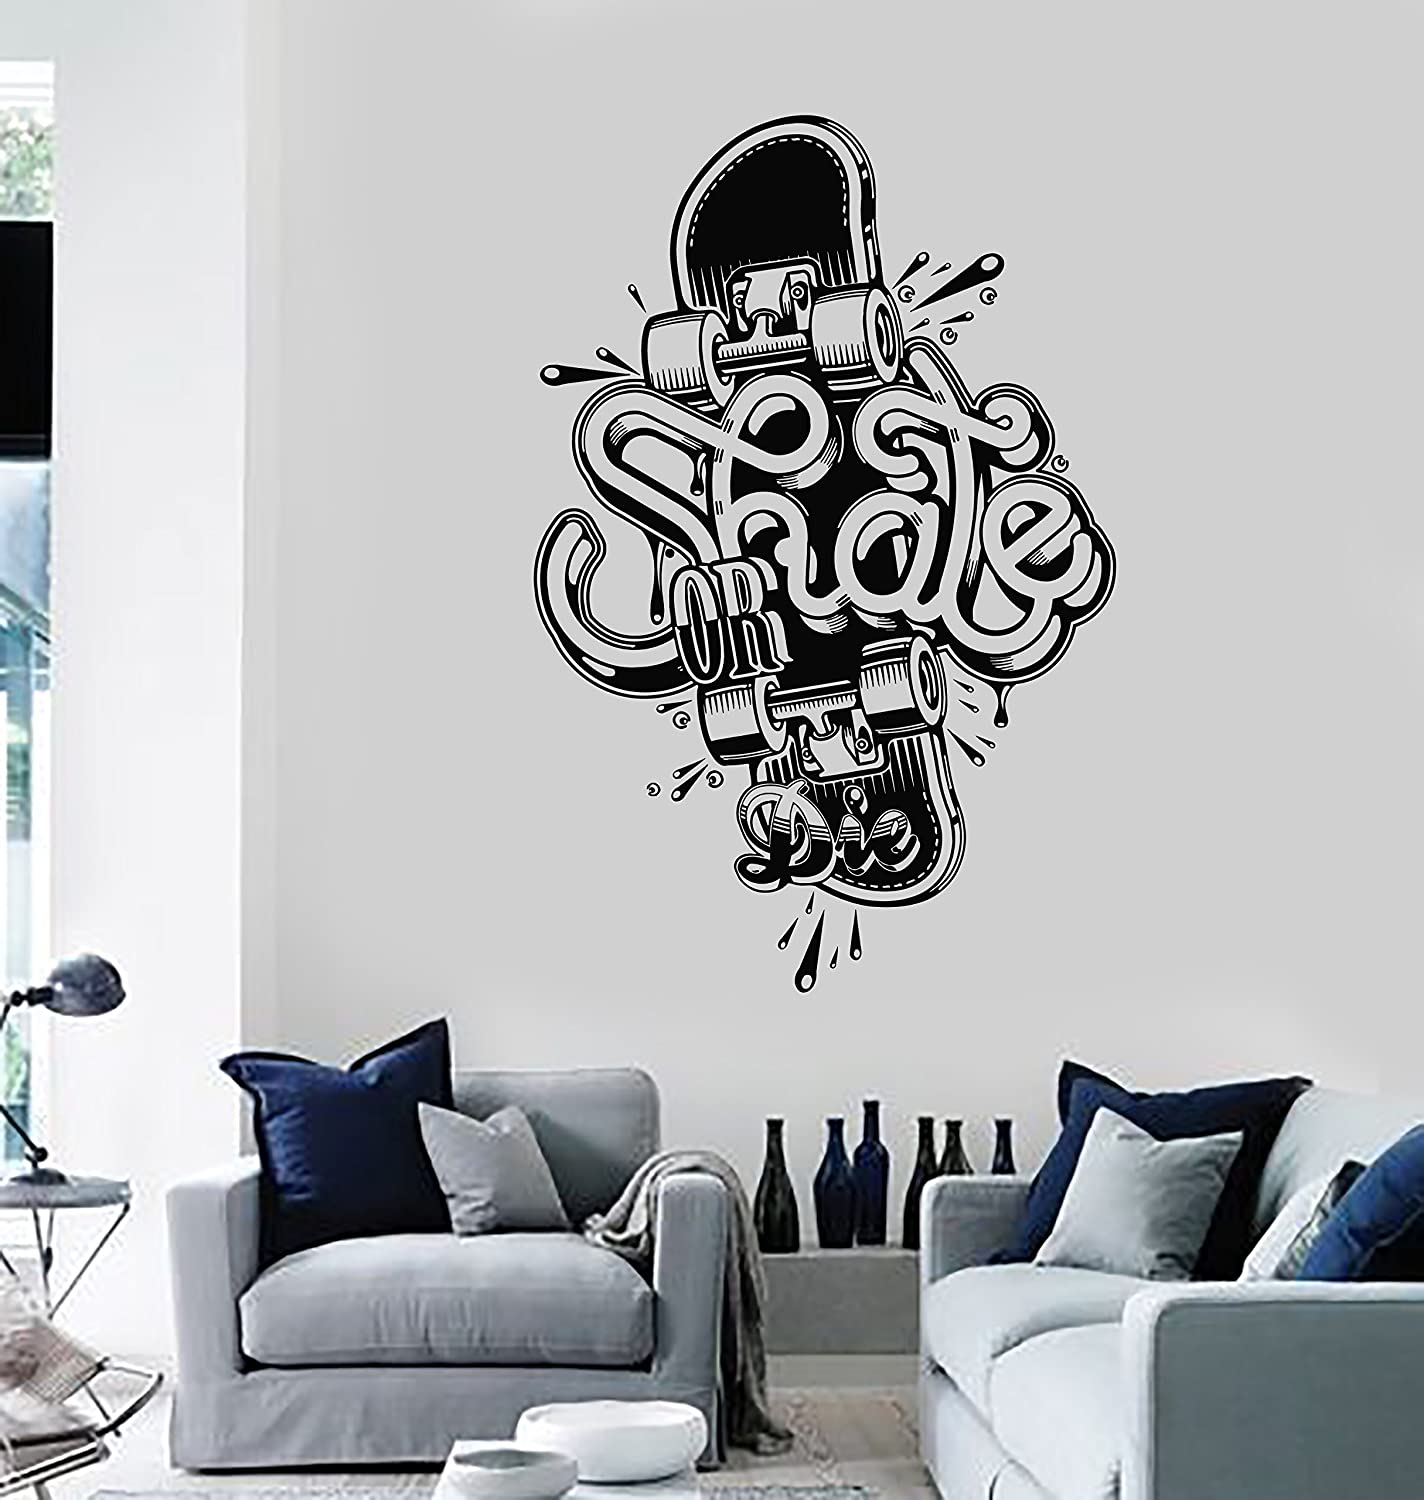 Wall Sticker Vinyl Decal Skateboard Skate Die Sport or f Genuine Free Some reservation Shipping Extreme